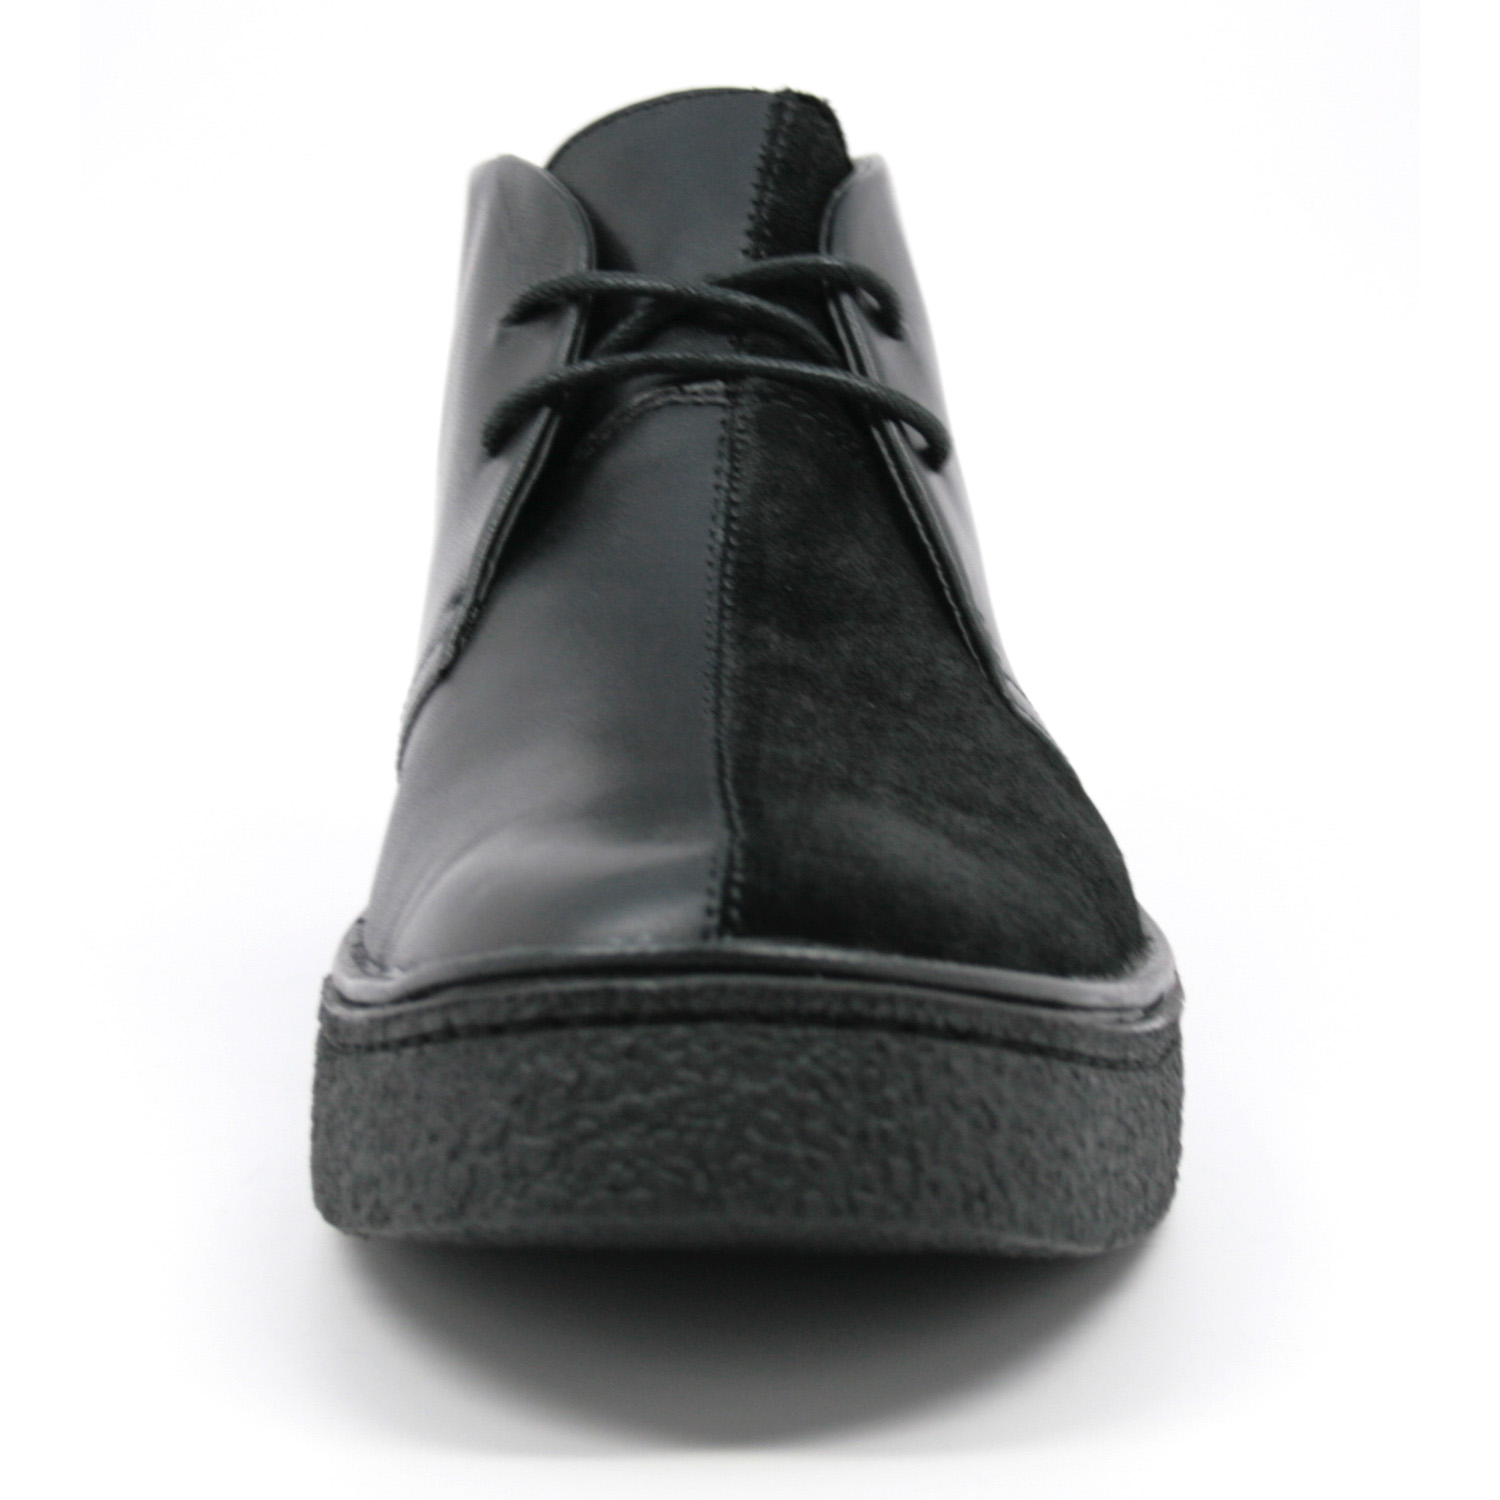 British Walkers Men S Playboy Chukka Boot Black Black